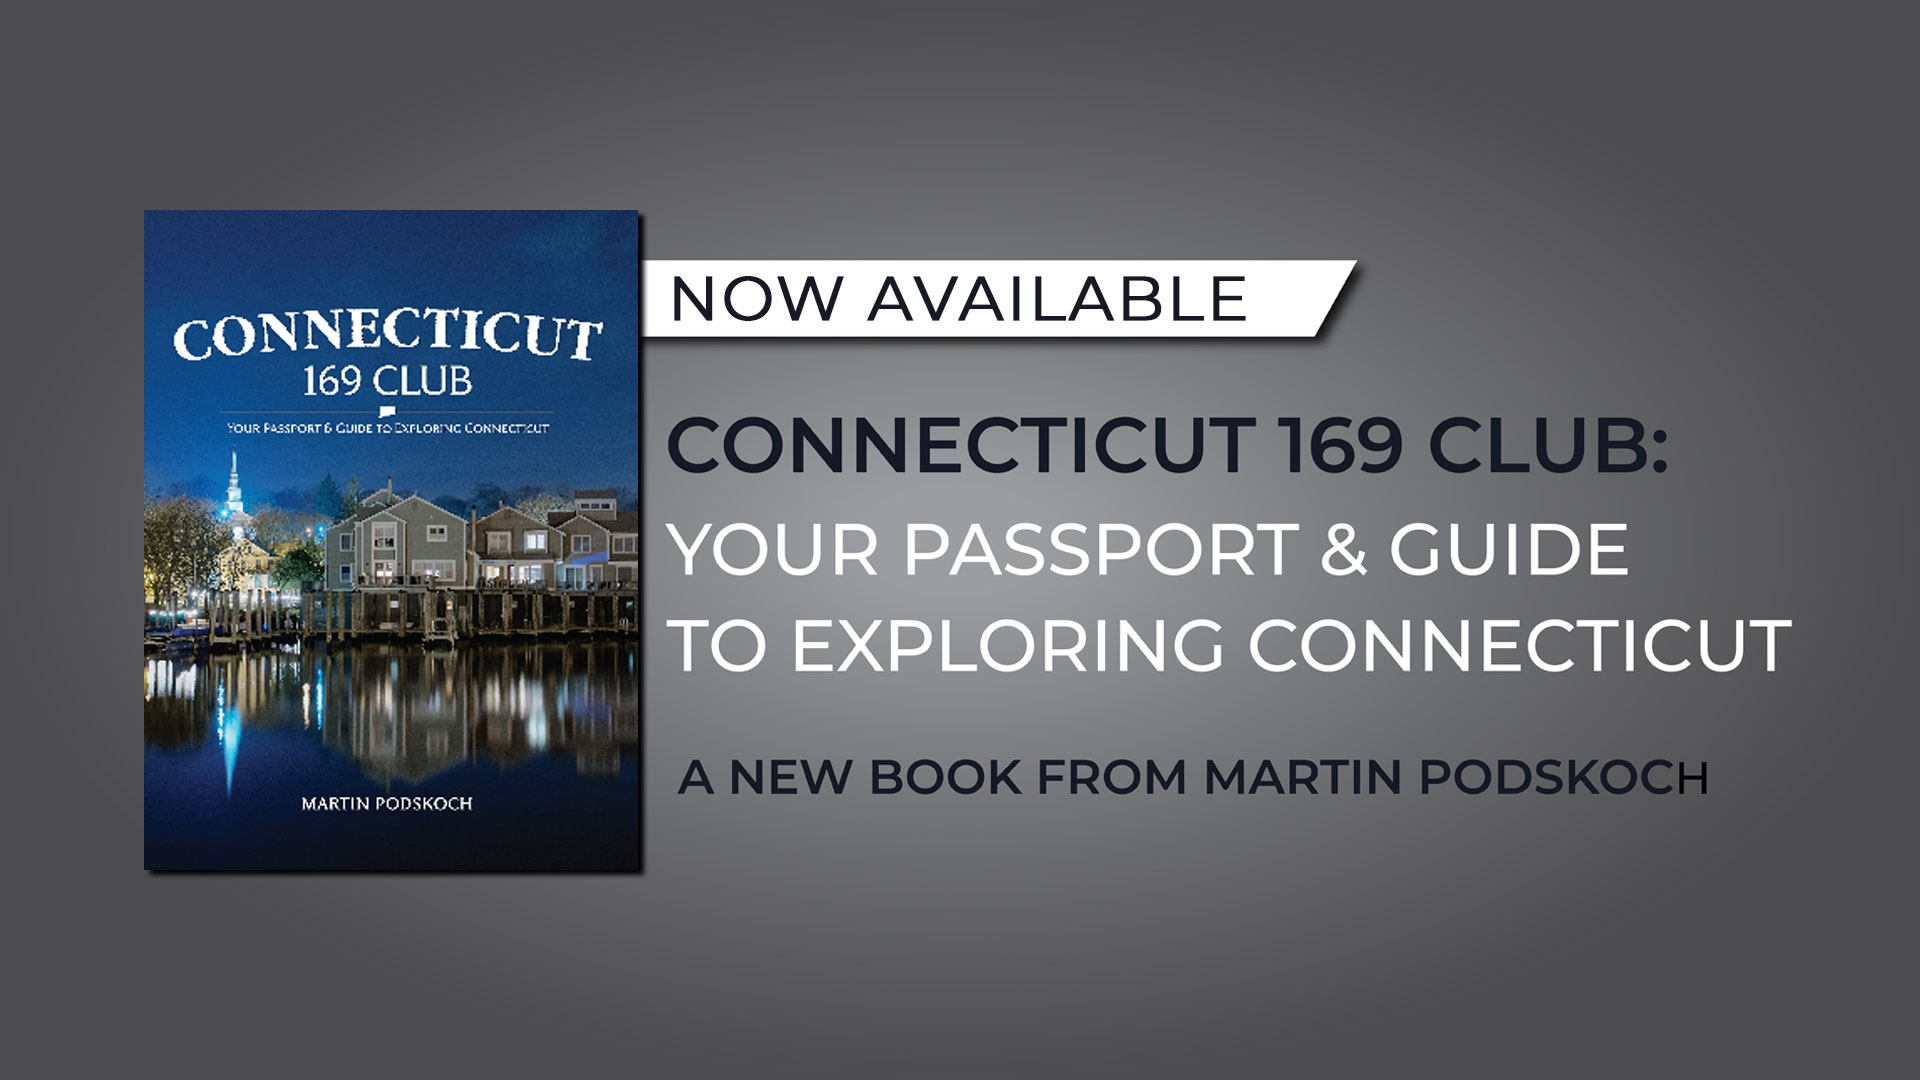 The Connecticut 169 Club Travel Guide